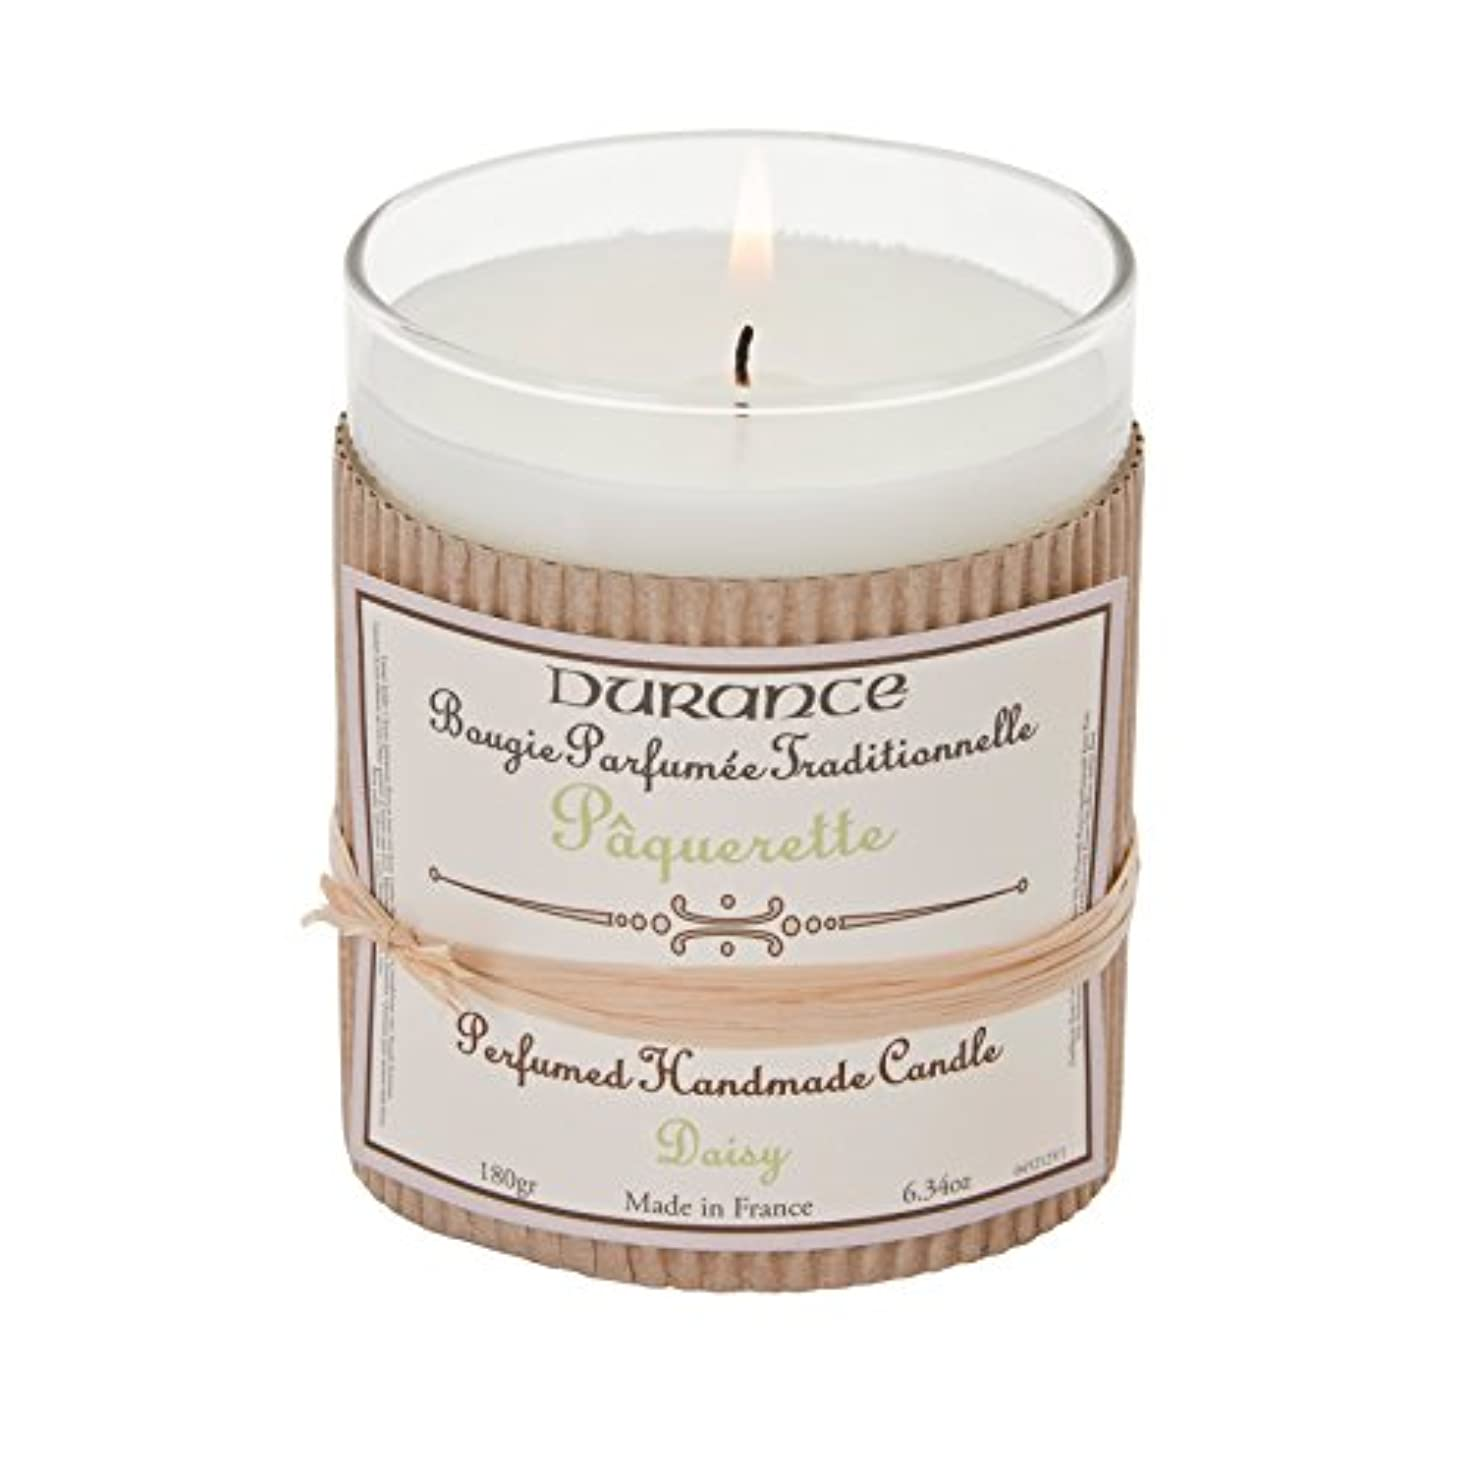 Durance De Provence Hand Crafted Scented Candle - Daisy